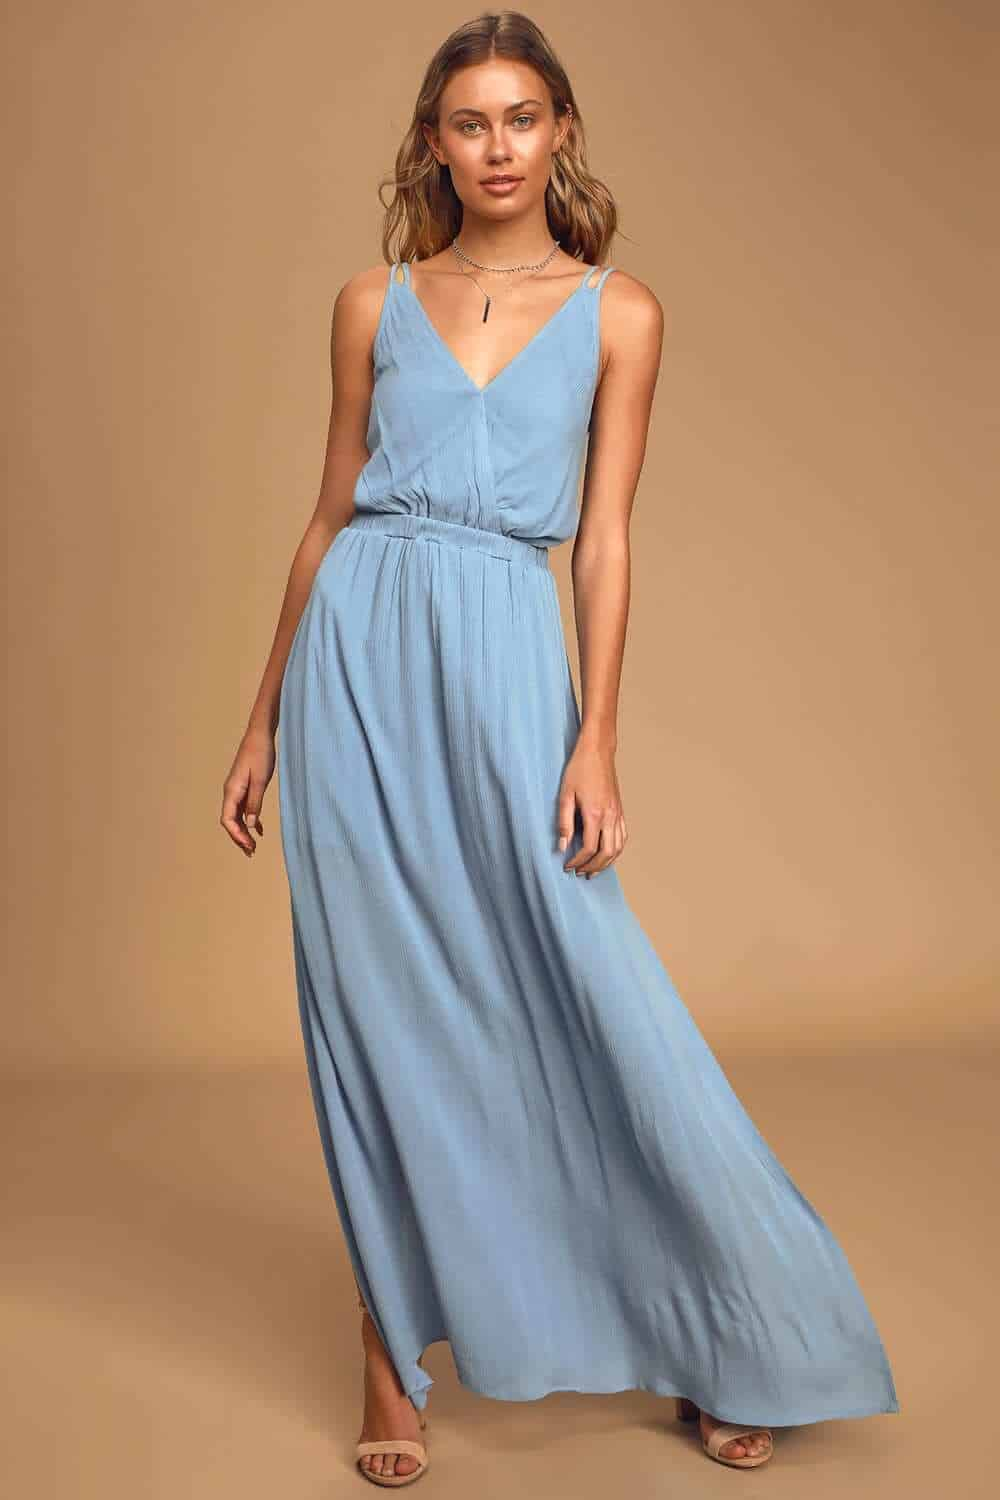 Wedding Guest Outfits Light Blue Maxi Dress What to Wear to a Wedding as a Guest (1)